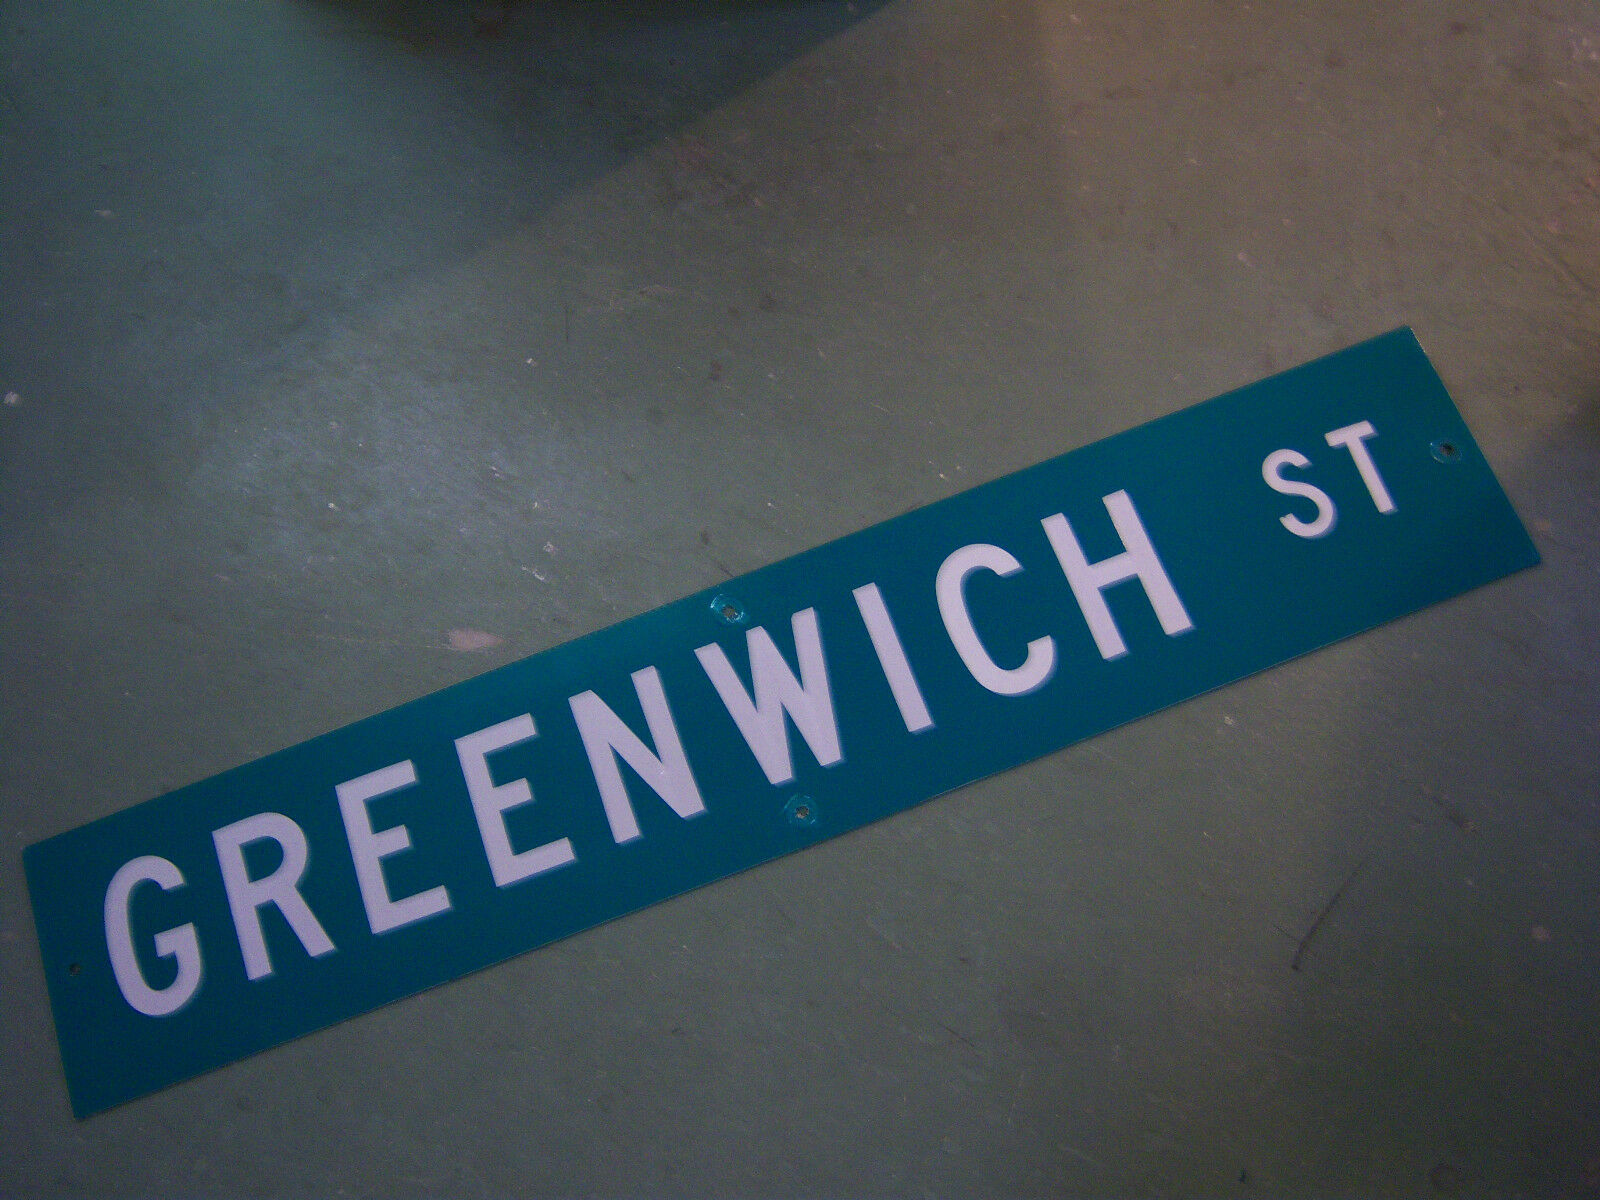 "Large Original Greenwich St Street Sign 48"" X 9"" White Lettering On Green"